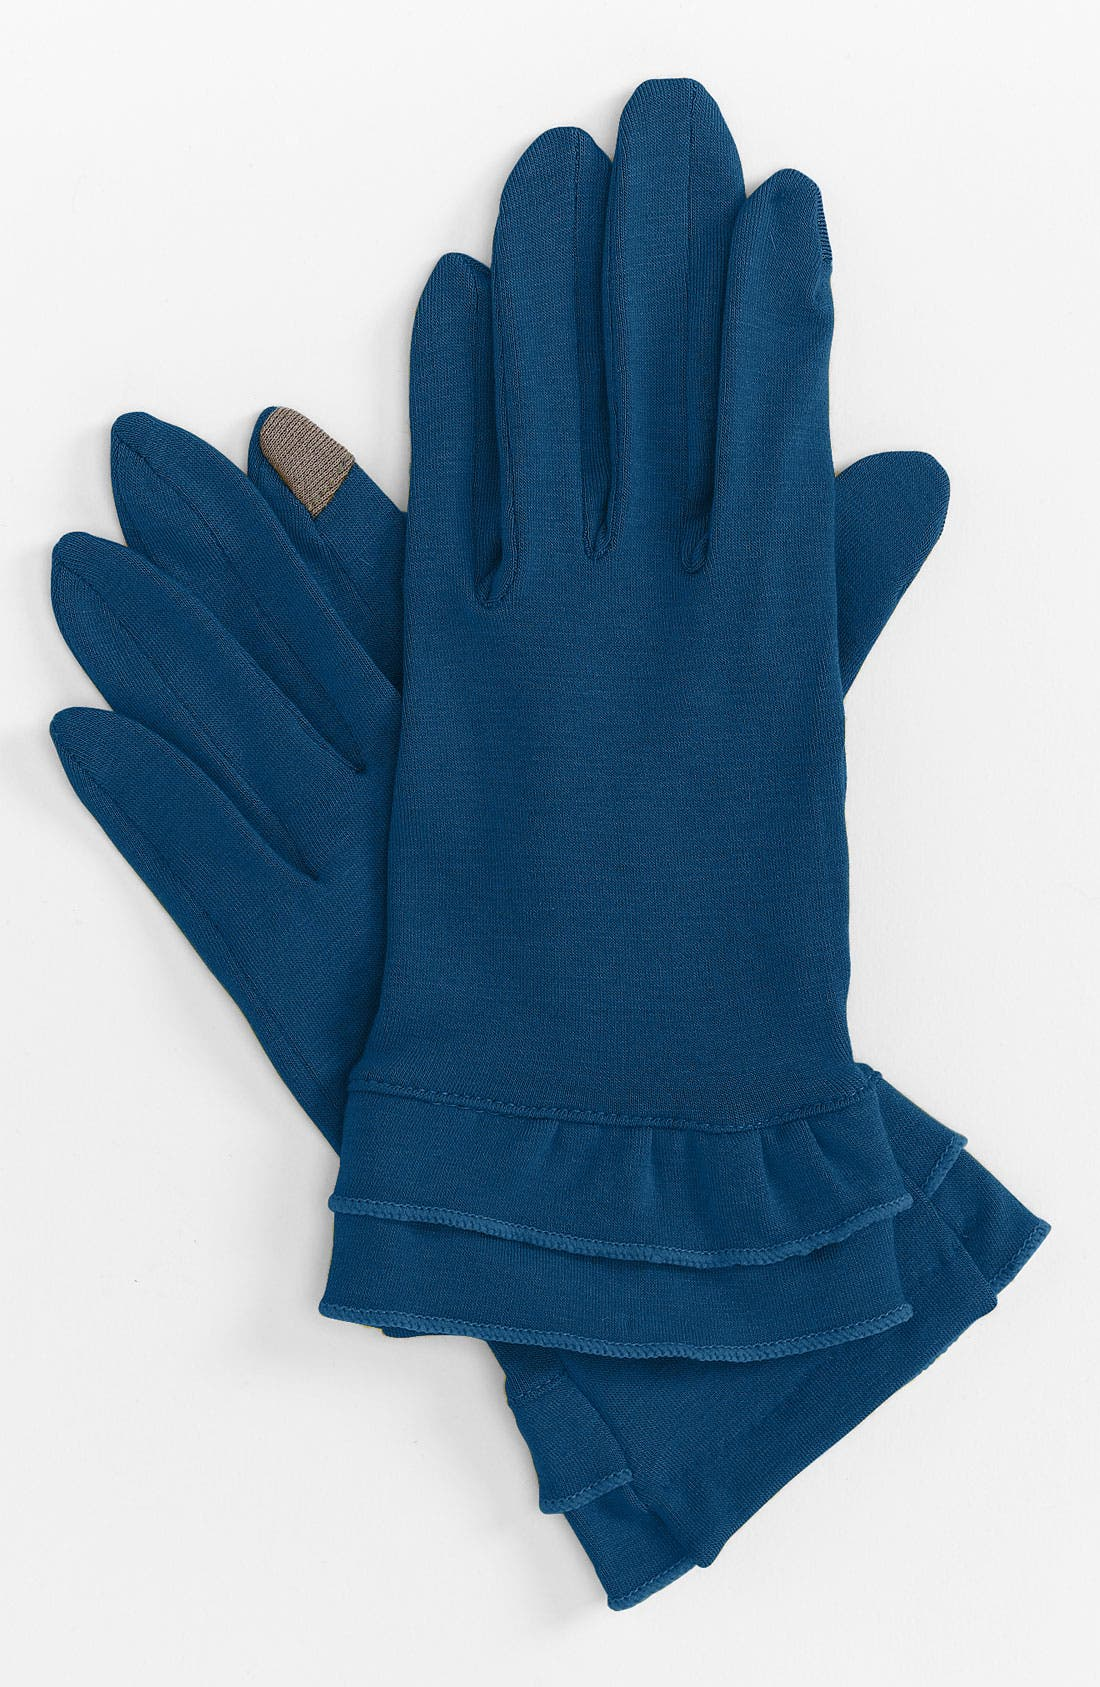 Alternate Image 1 Selected - Echo 'Touch Warmers' Ruffle Gloves